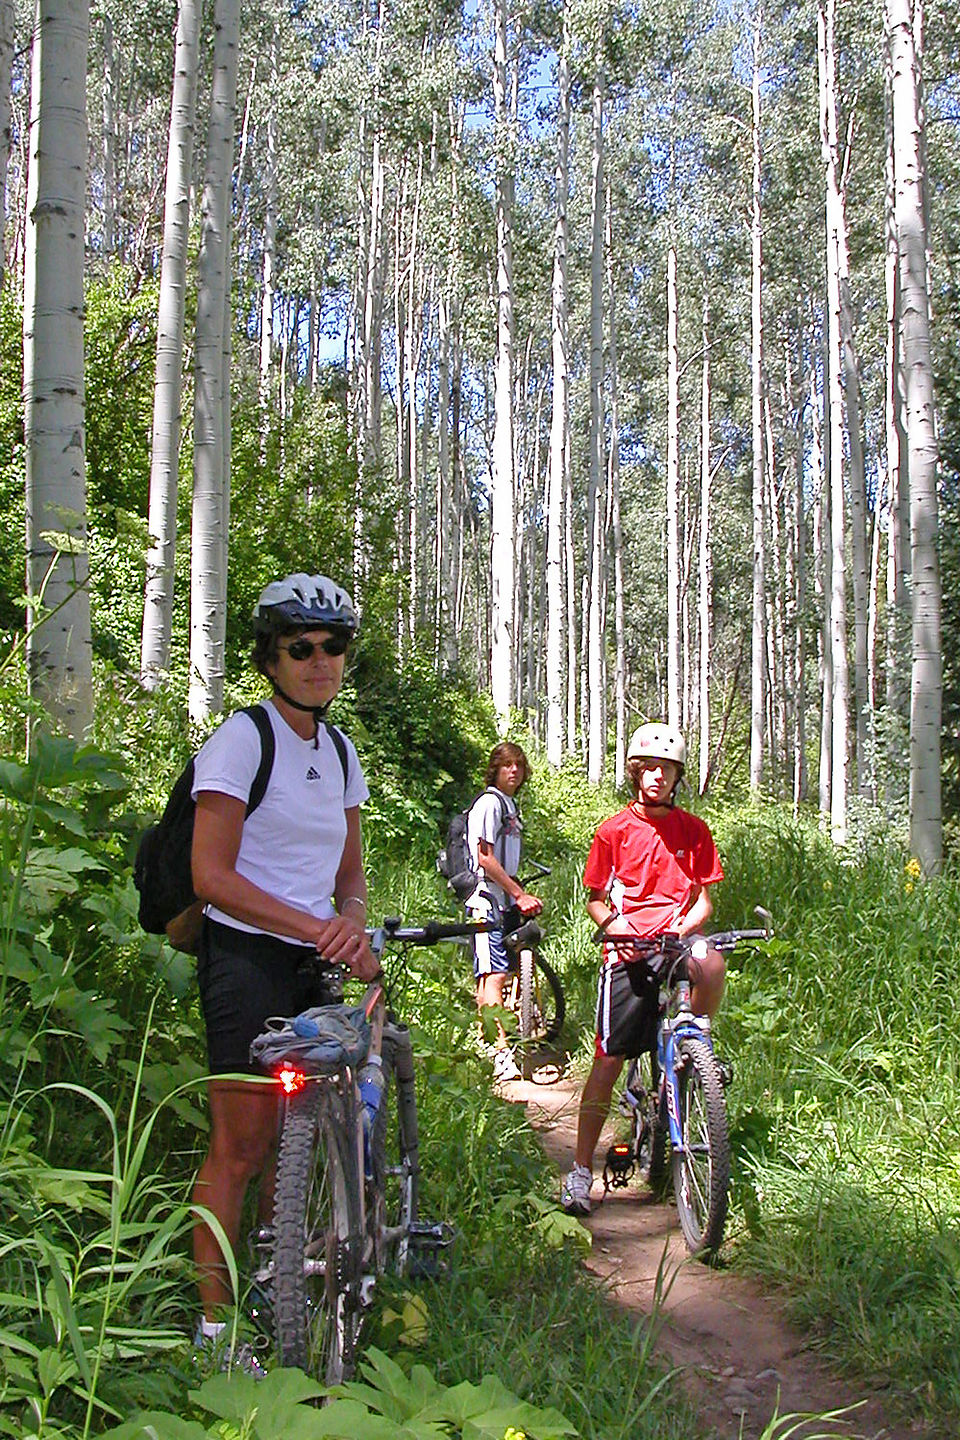 Lolo and boys on Vail singletrack